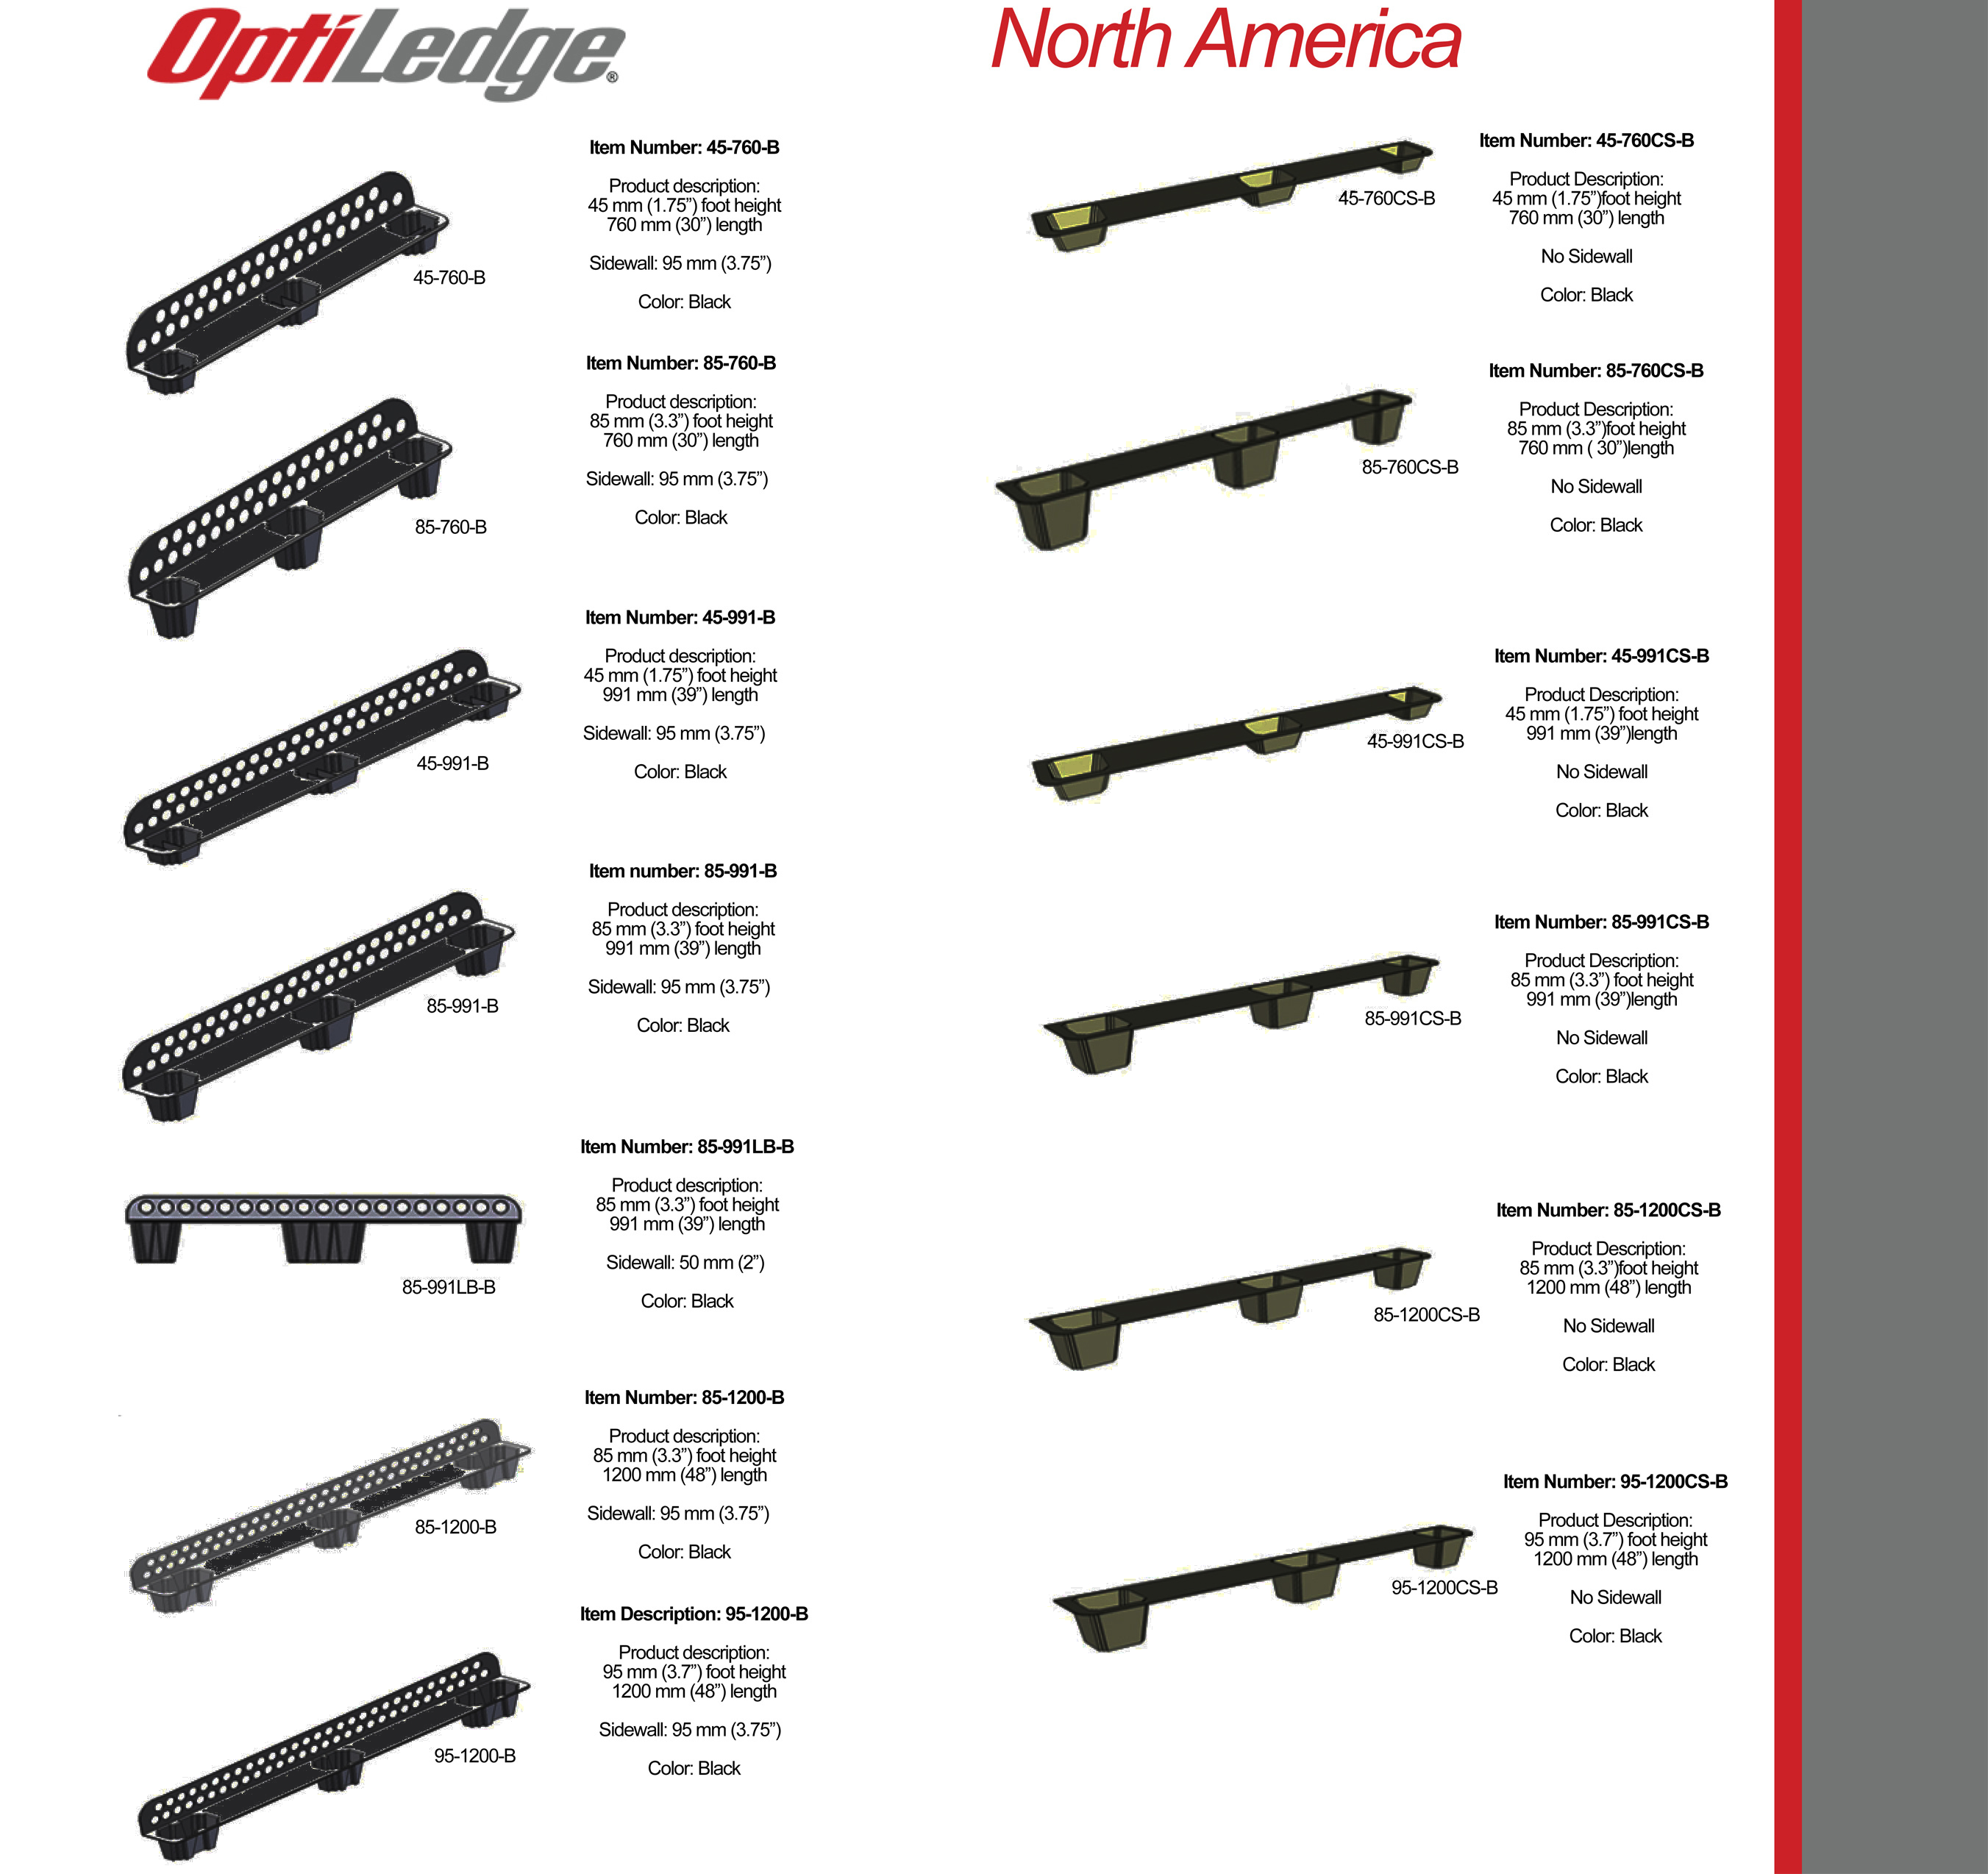 optiledge-north-america-final.jpg